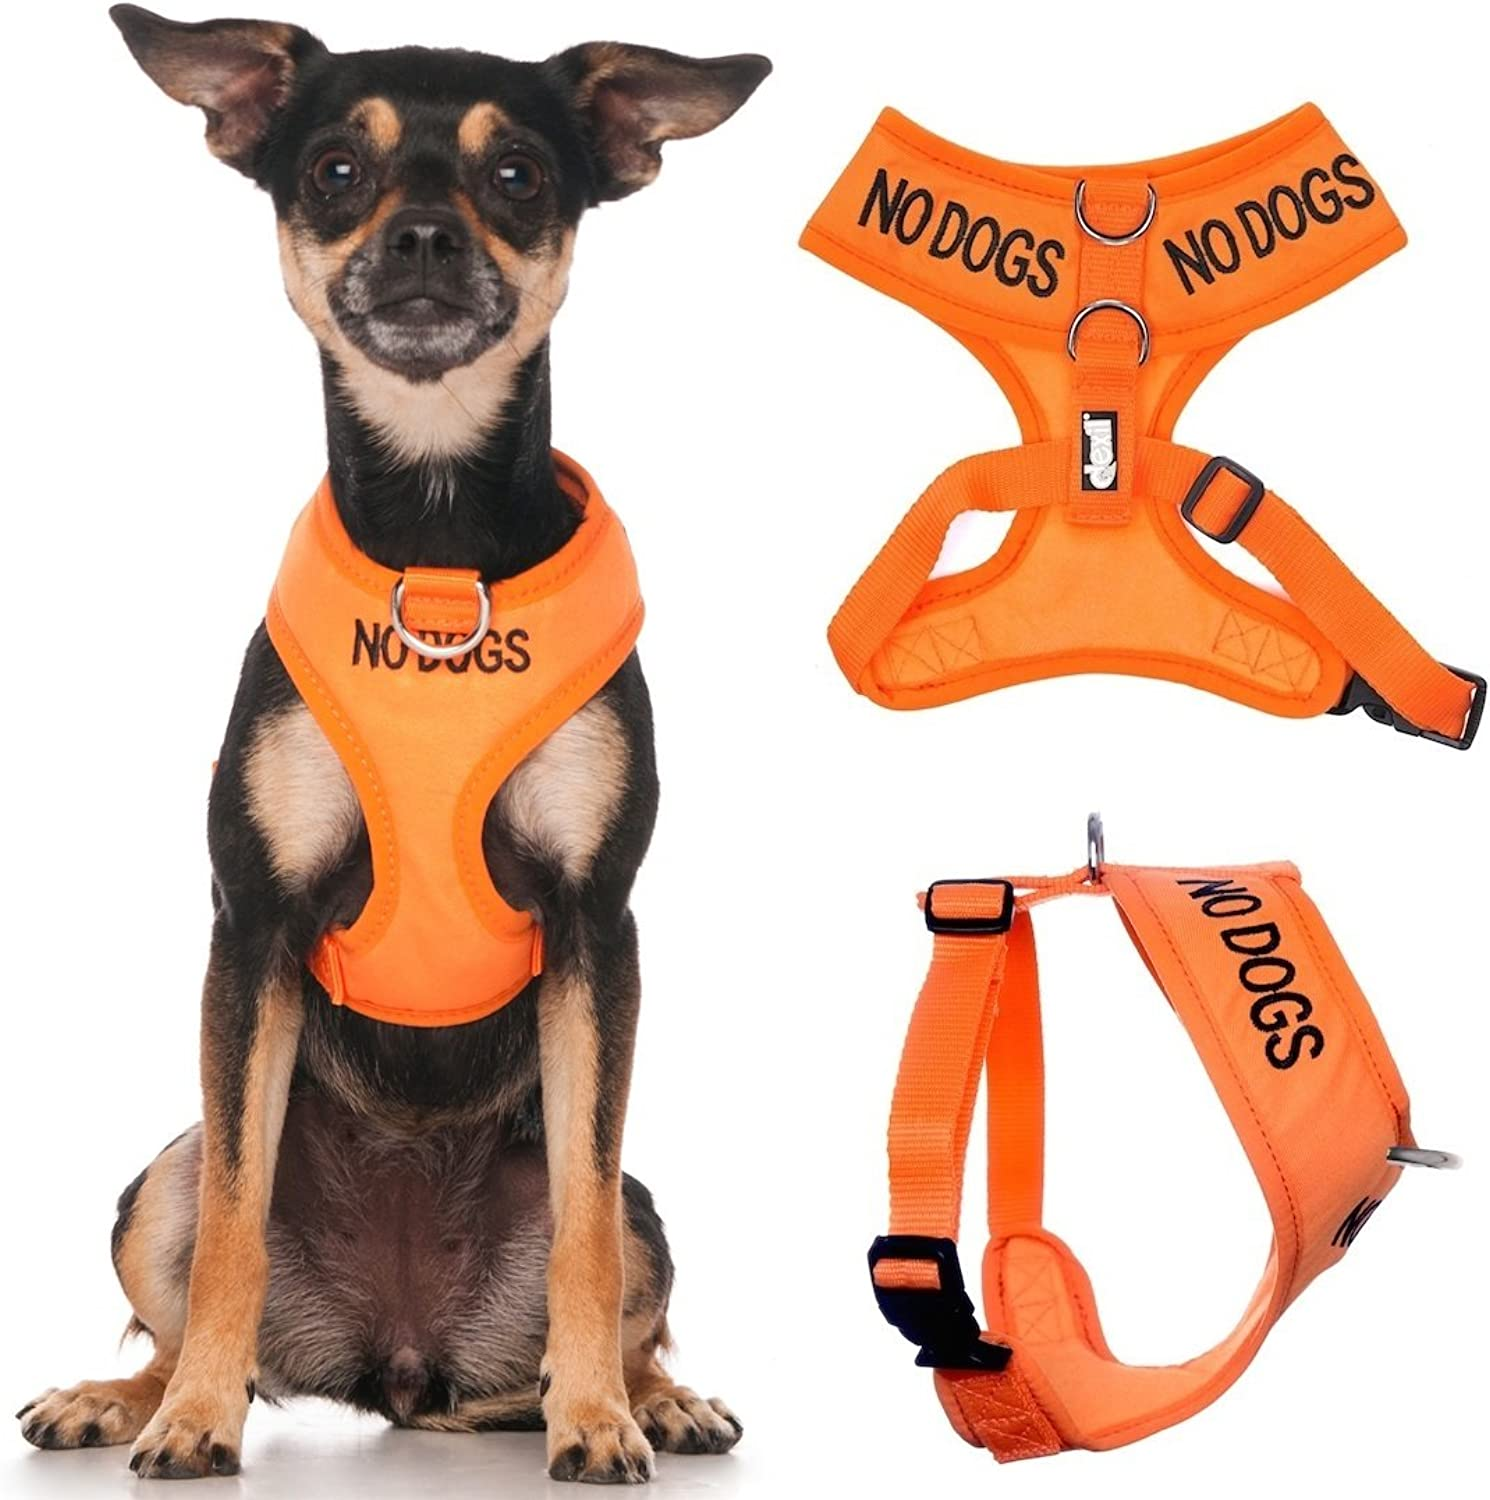 NO Dogs (Not Good with Other Dogs) orange color Coded NonPull Front and Back D Ring Padded and Waterproof Vest Dog Harness Prevents Accidents by Warning Others of Your Dog in Advance (XS)